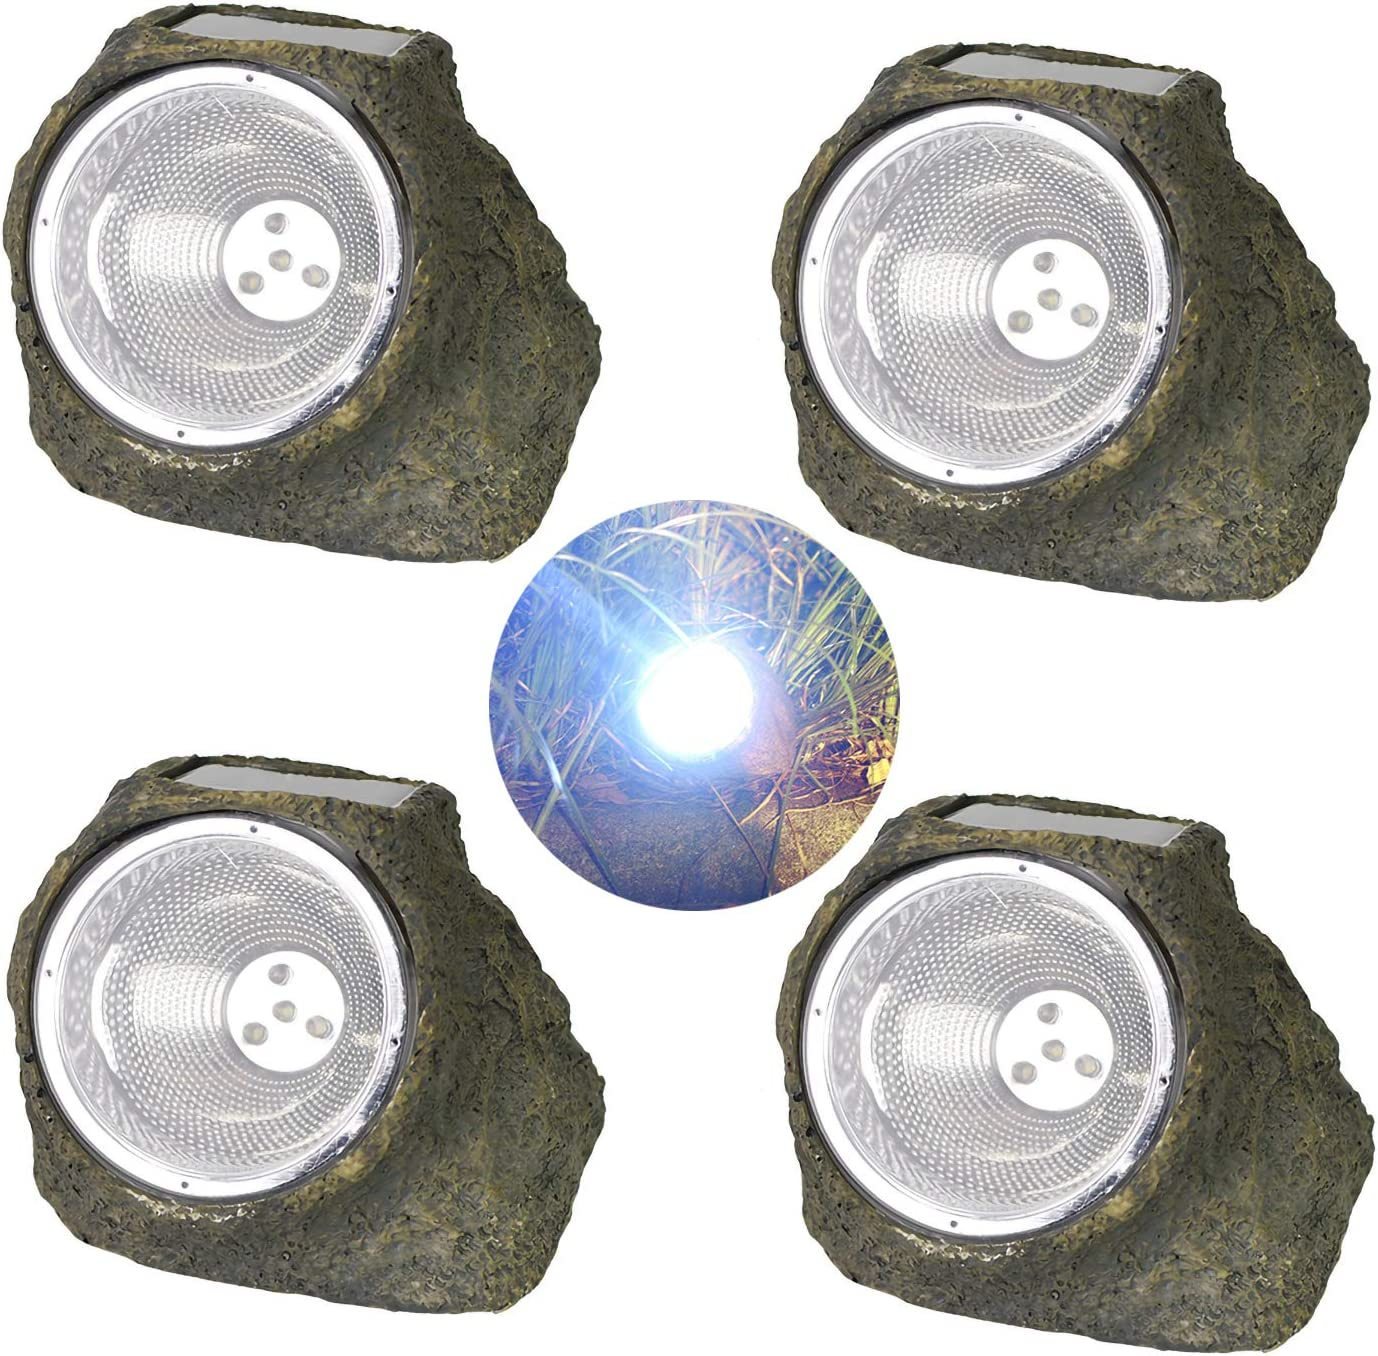 DSDecor 4 Pack Solar Powered Rock Lights Outdoor Waterproof Resin Stone Solar LED Lights for Landscape Garden Yard Lawn Walkway Pathway Decorations